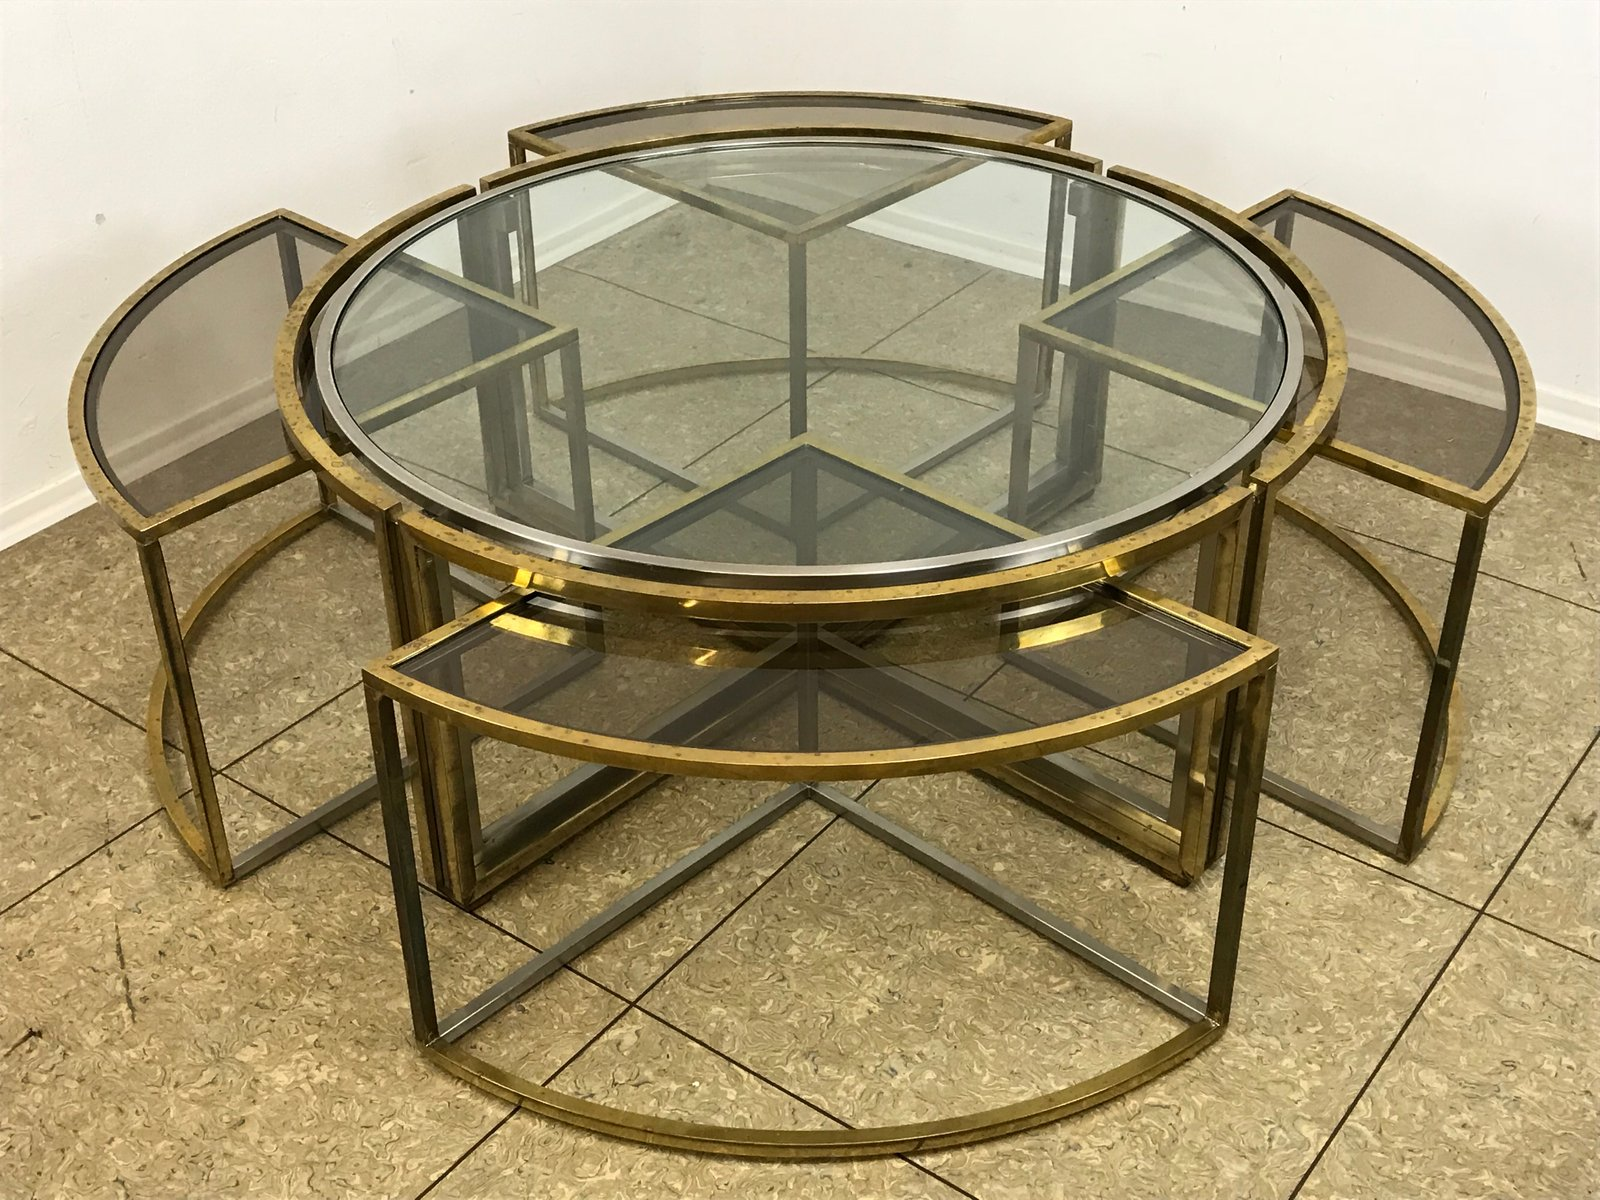 Vintage coffee table in brass and chrome with 4 nesting tables for vintage coffee table in brass and chrome with 4 nesting tables geotapseo Choice Image